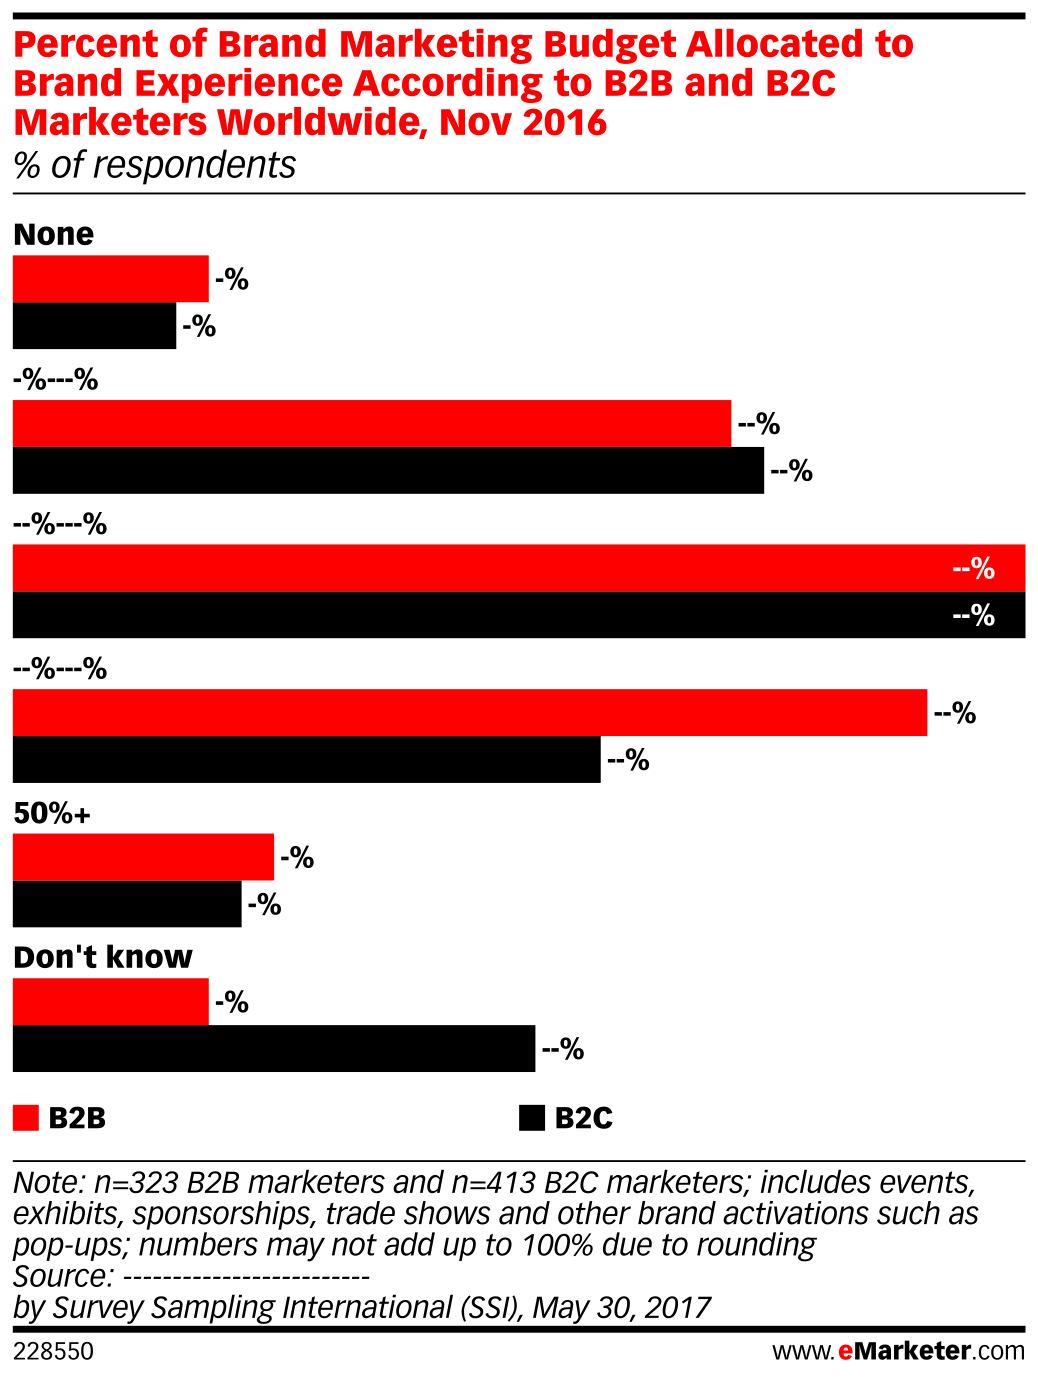 Percent of Brand Marketing Budget Allocated to Brand Experience According to B2B and B2C Marketers Worldwide, Nov 2016 (% of respondents)